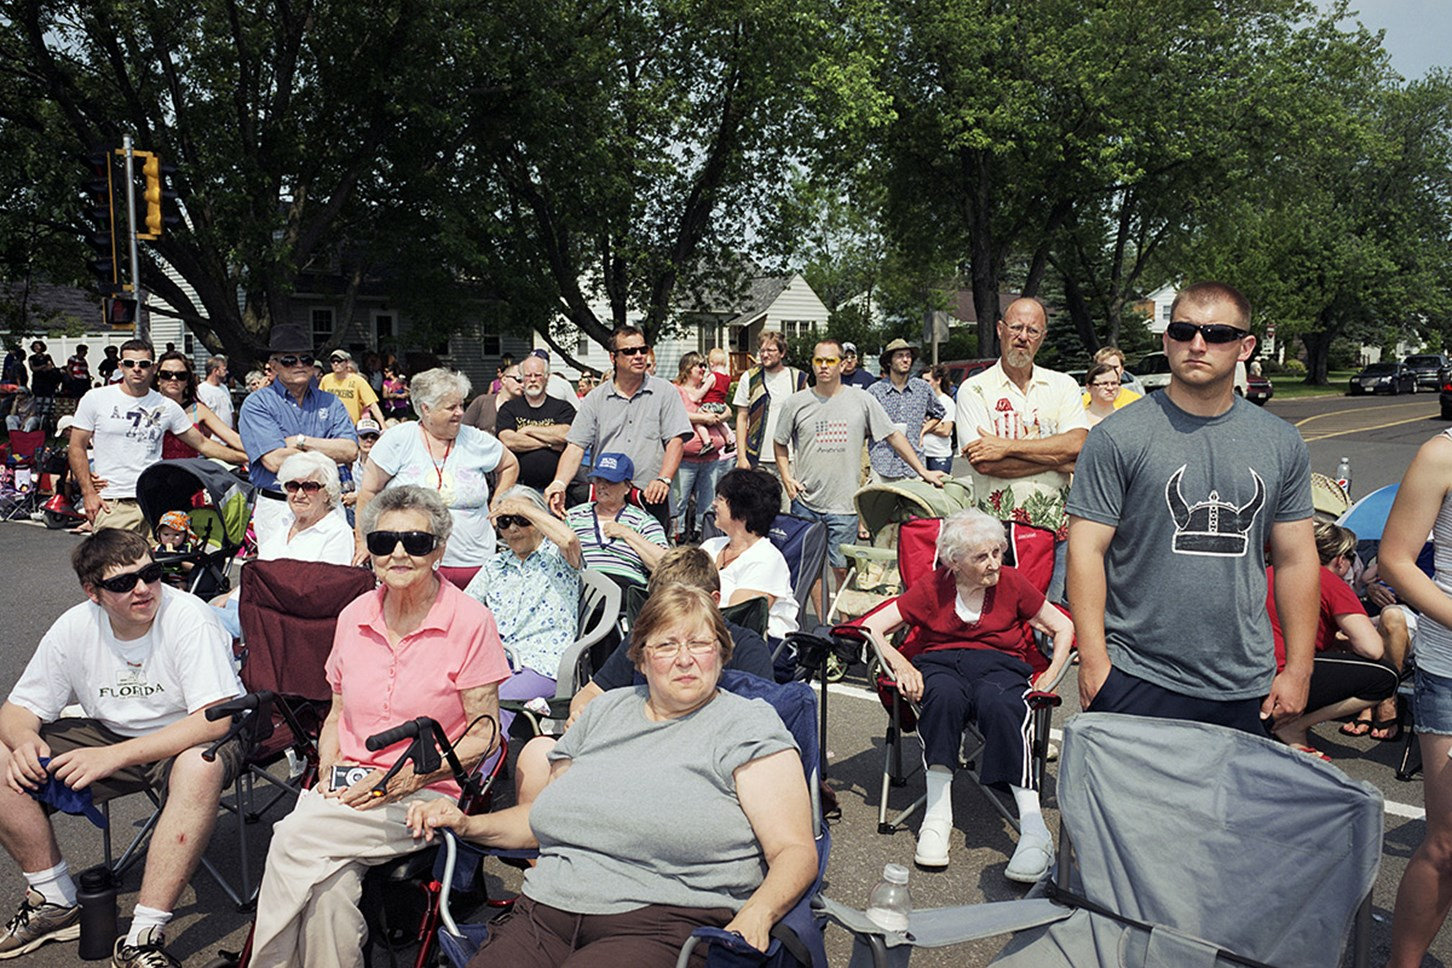 Crowd, 4th of July Parade, Superior, Wisconsin, July 2012